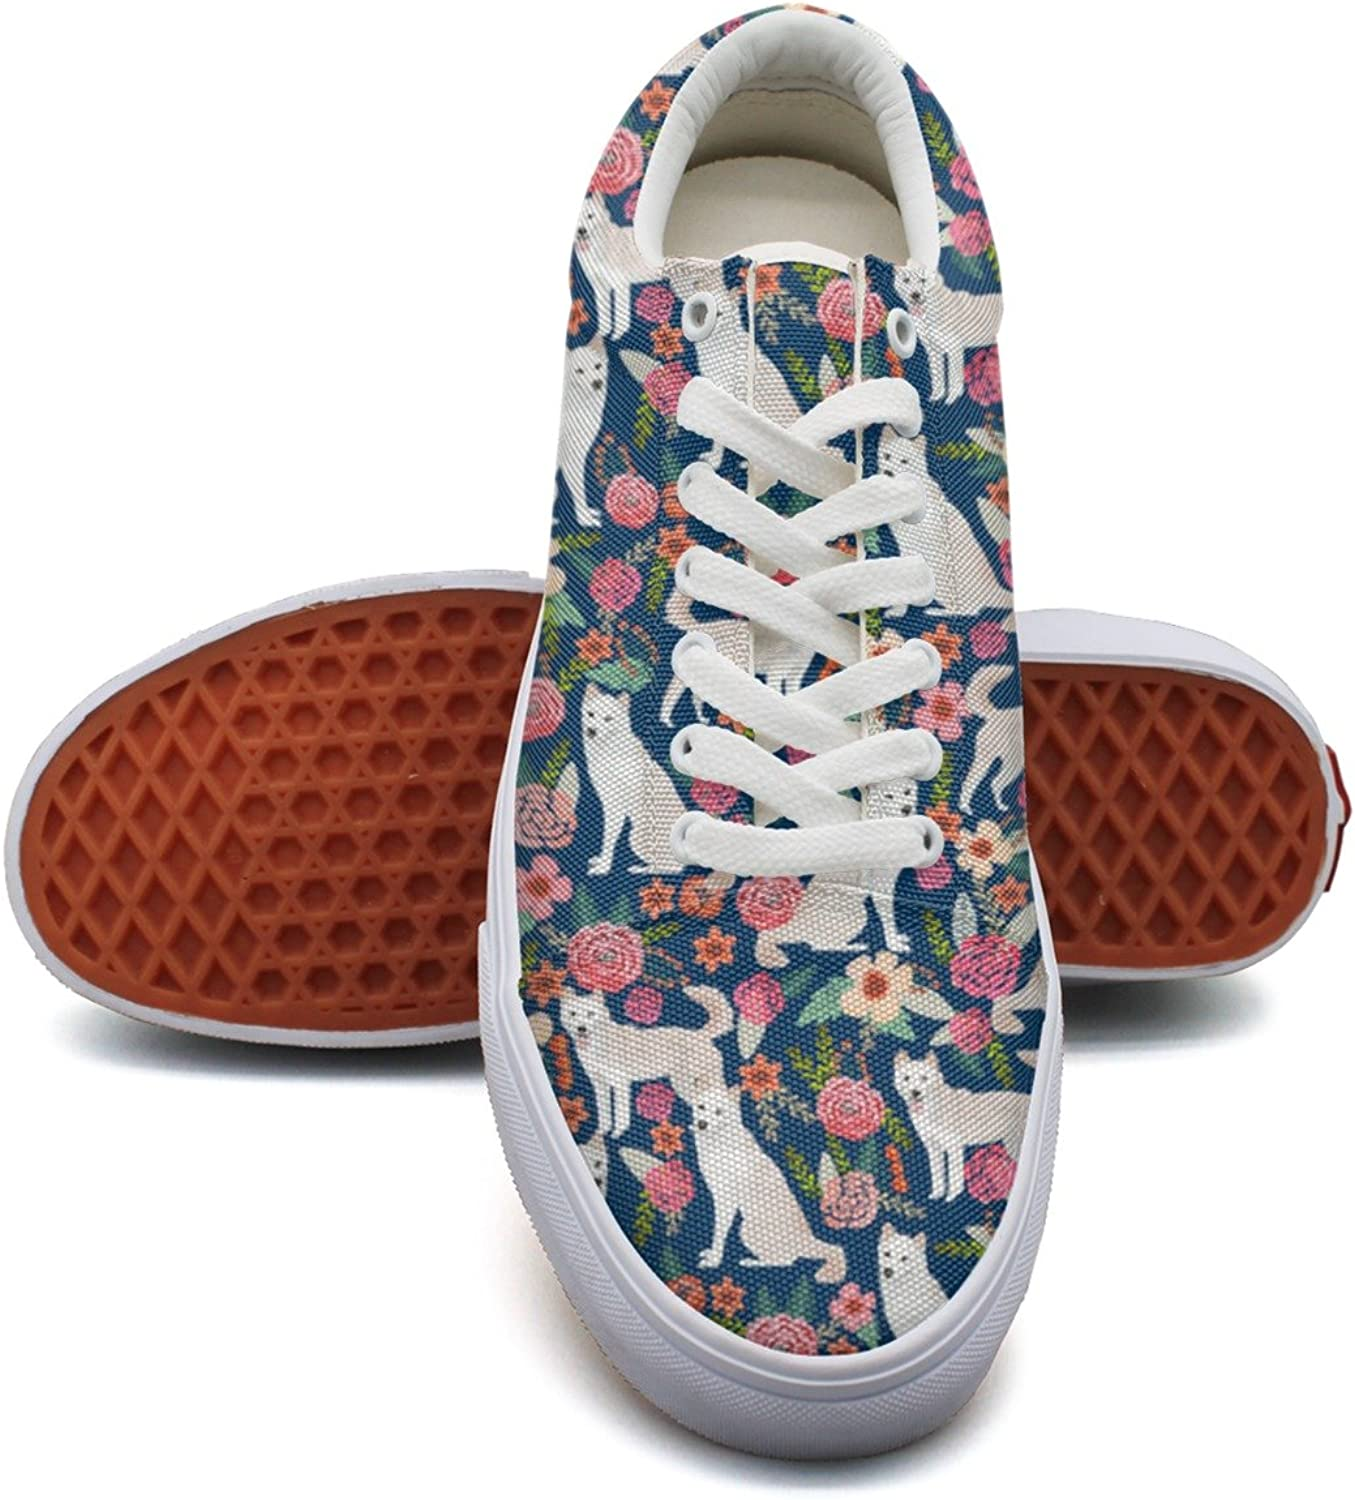 Feenfling White Jindo Dog Flowers Womens Denim Canvas shoes Low Top Fashion Tennis shoes for Women's